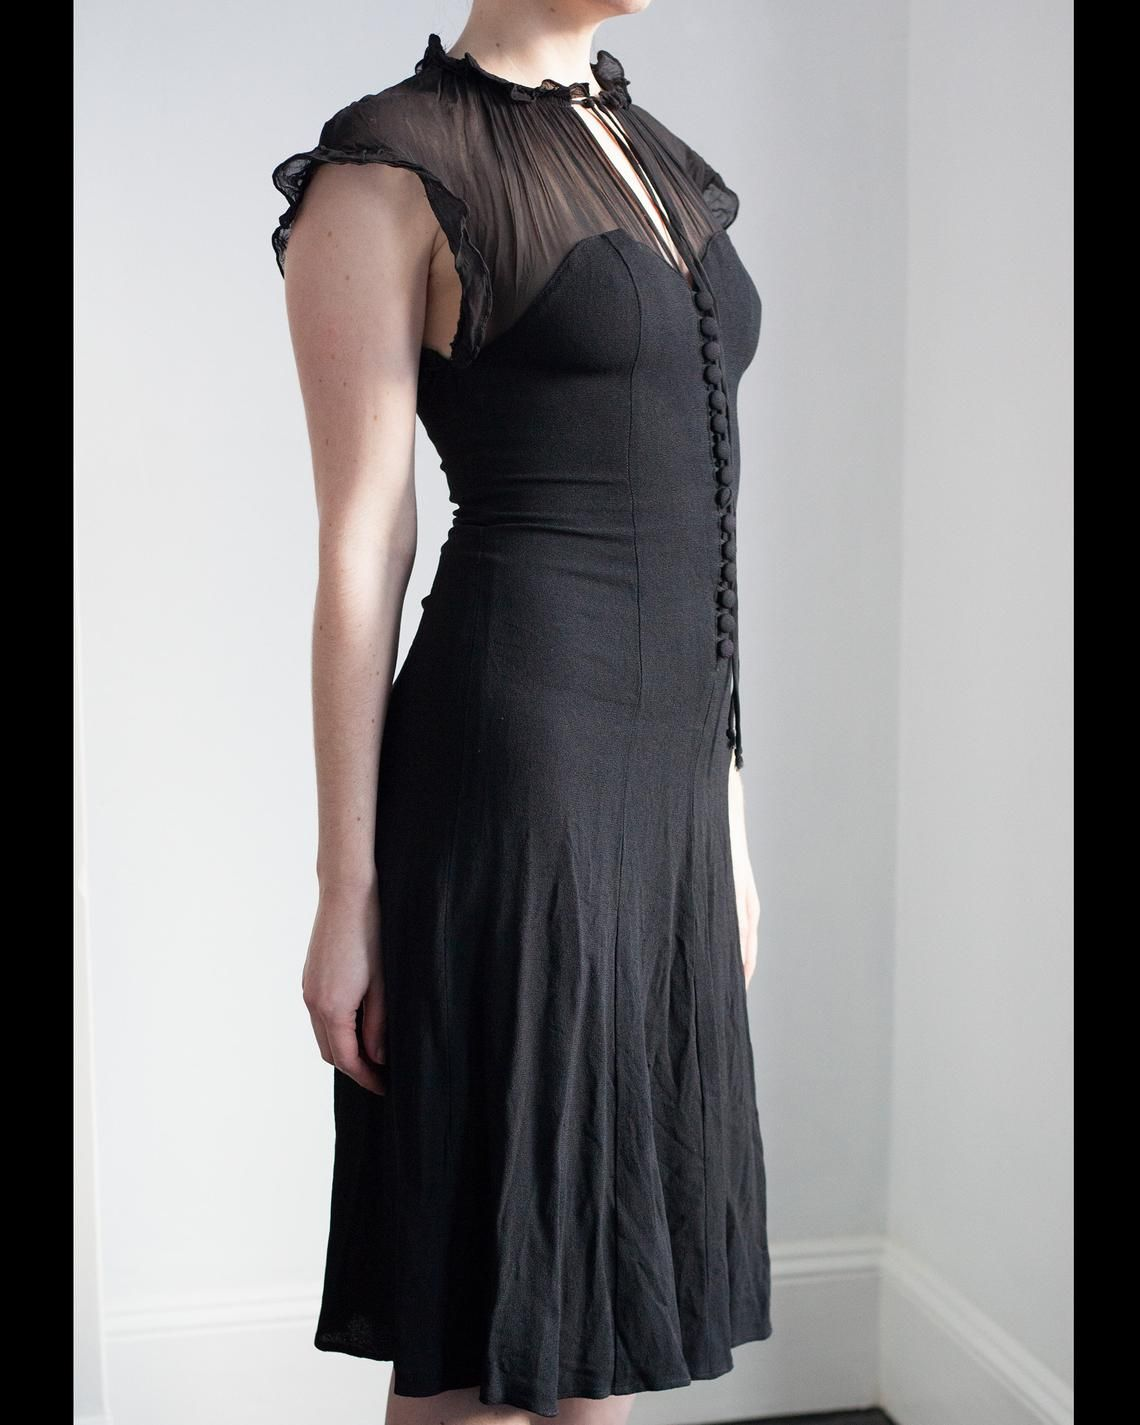 Vintage Ossie Clark For Radley Moss Crepe And Chiffon Black Etsy Black Chiffon Dress Chiffon Dress Size 12 Maxi Dress [ 1425 x 1140 Pixel ]